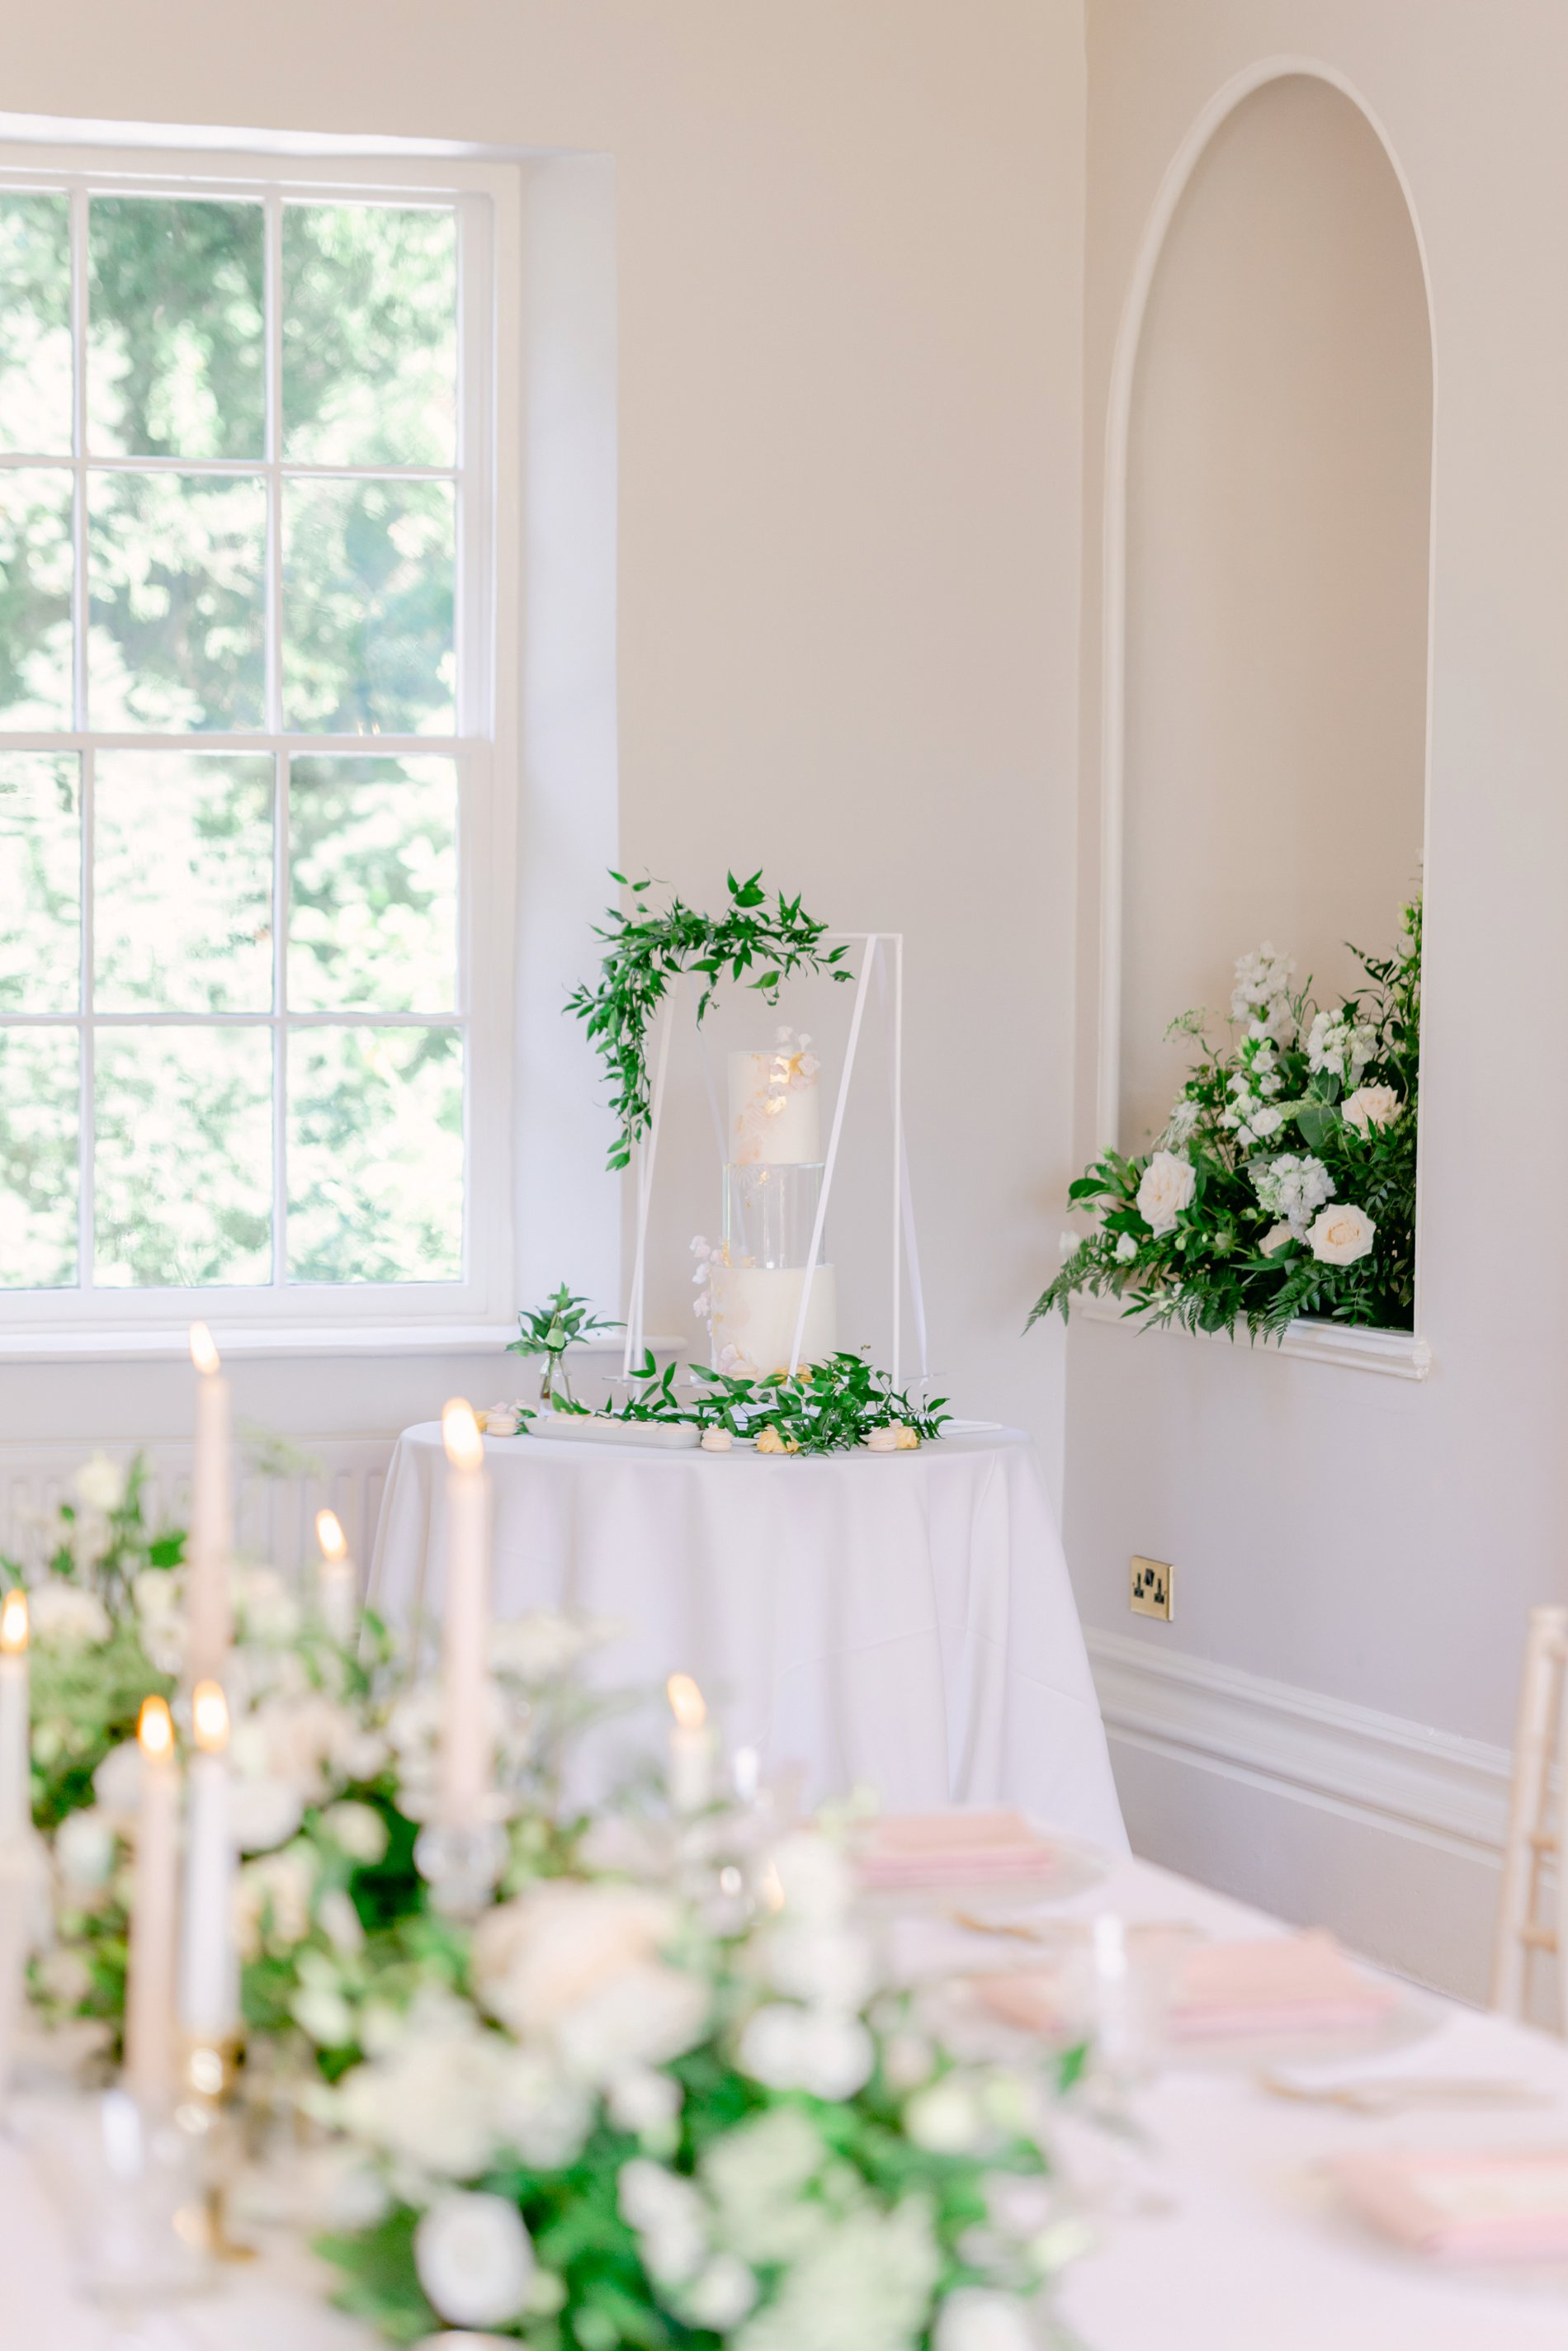 An Elegant UNVEILED Network wedding shoot at Hirst Priory (c) Ailsa Reeve Photography (16)